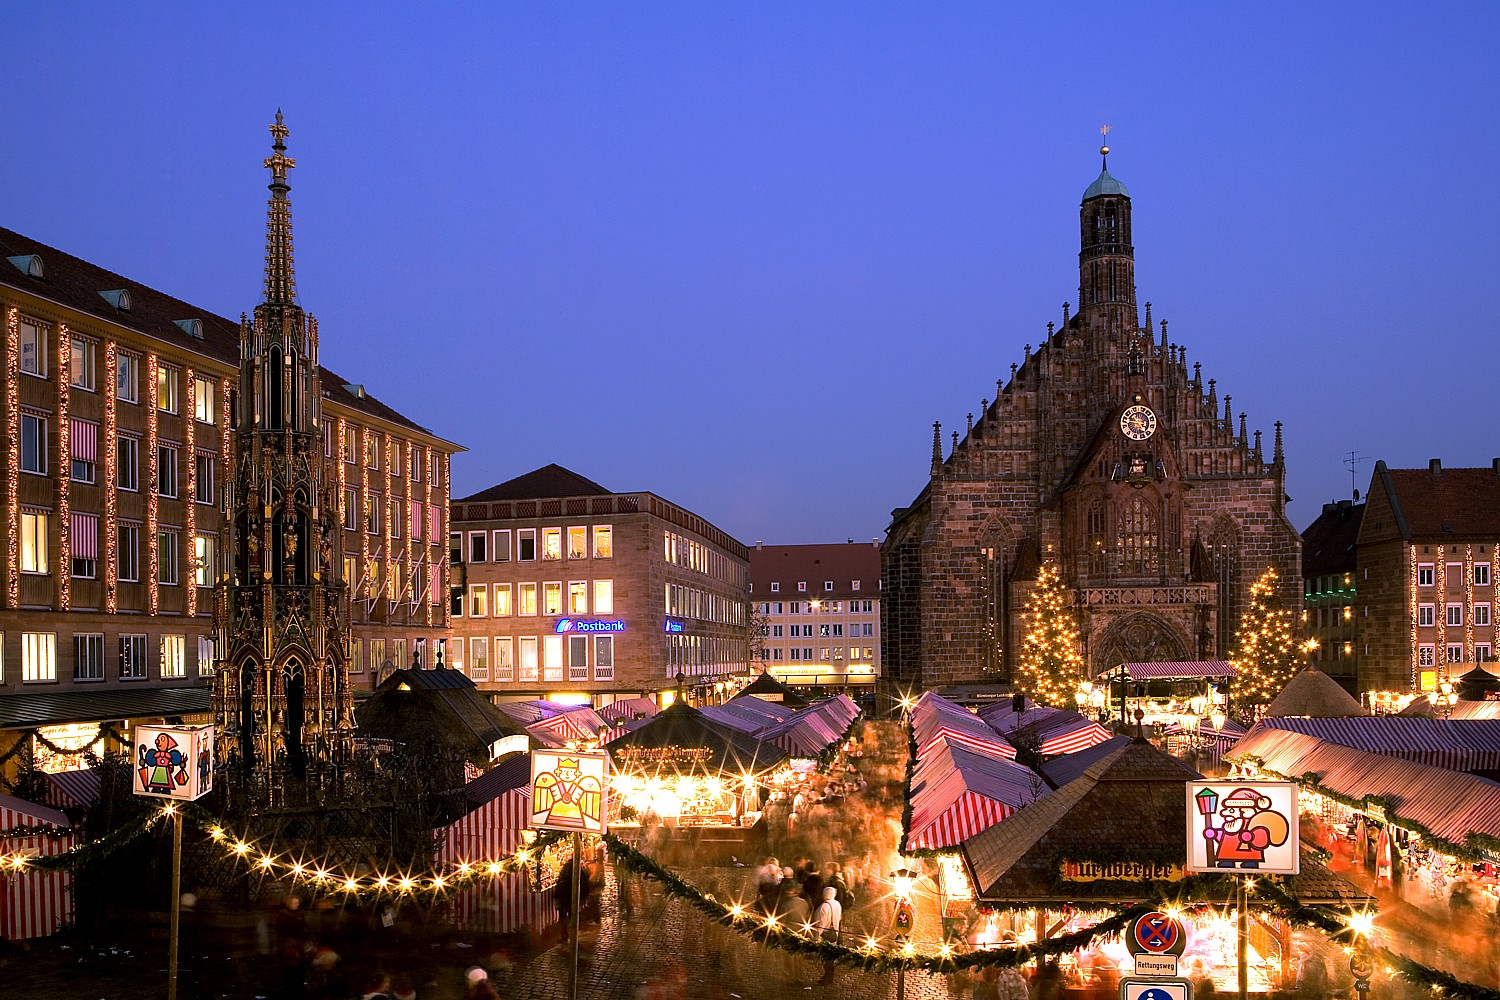 A dream come true: celebrating Christmas on the Rhine.